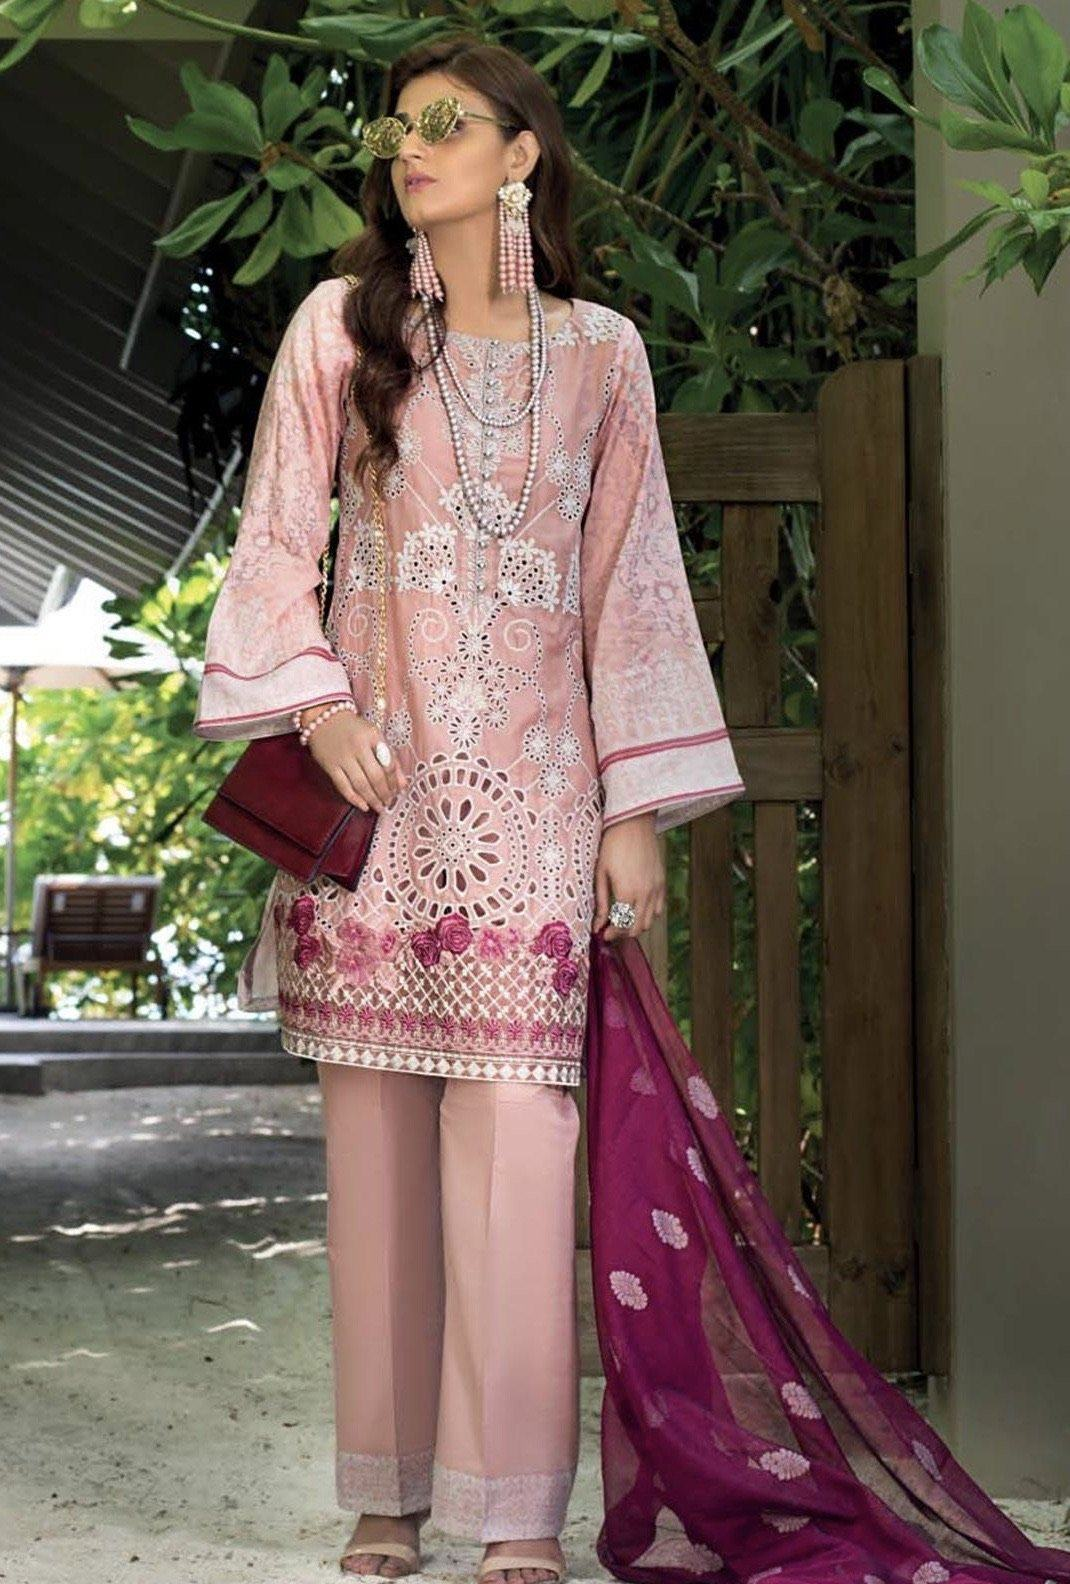 Zainab Peach 8B -Embroidered 3pc lawn chicken kari dress with printed chiffon dupatta.